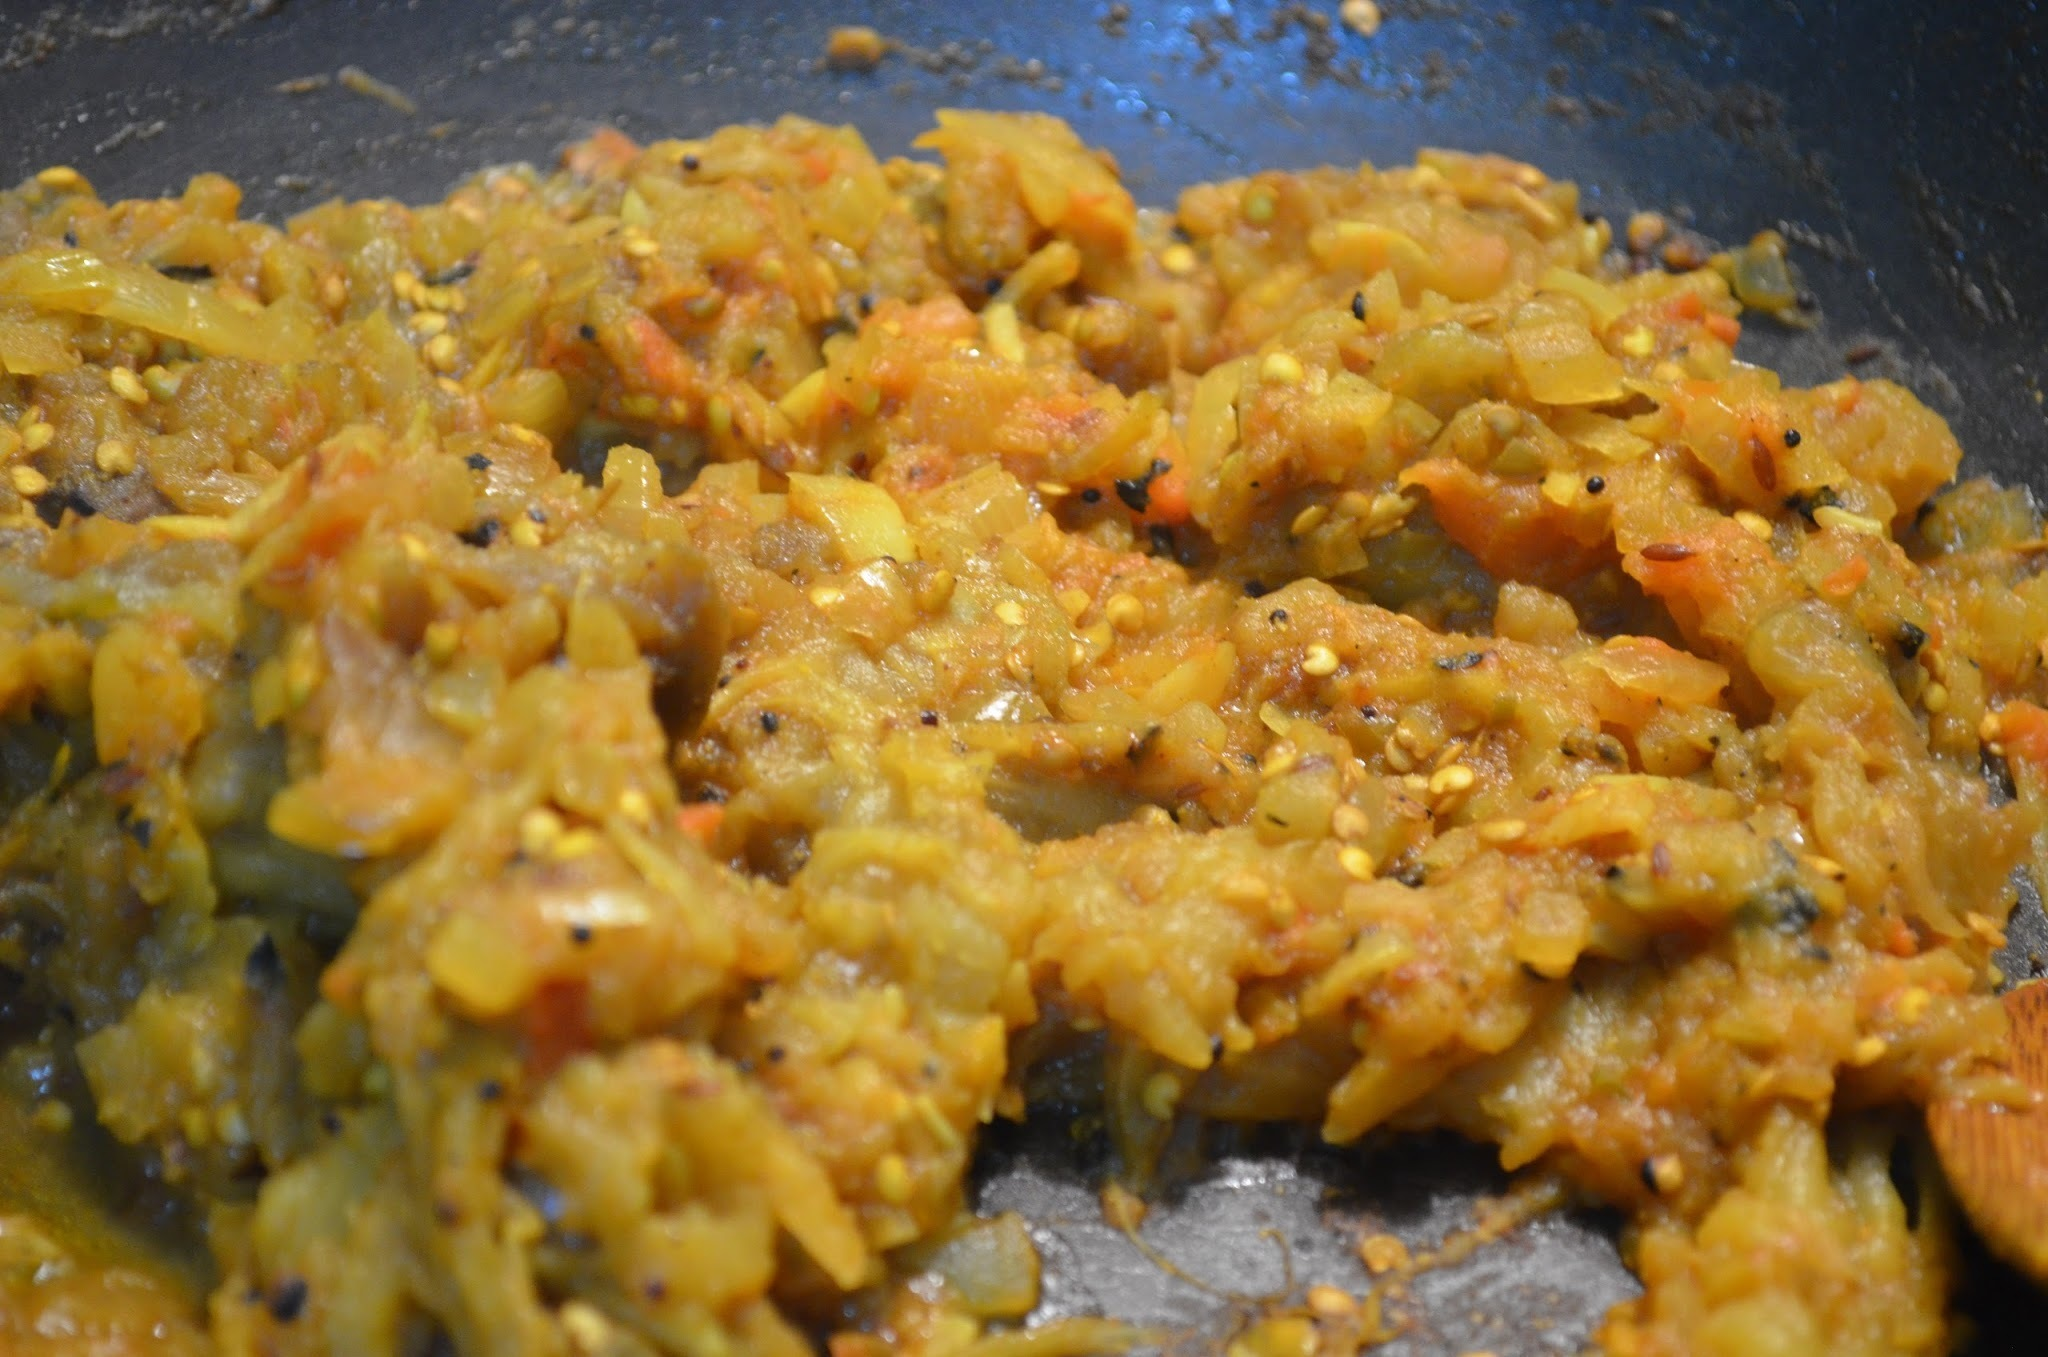 Baingan Bharta (Mashed Roasted Eggplant)